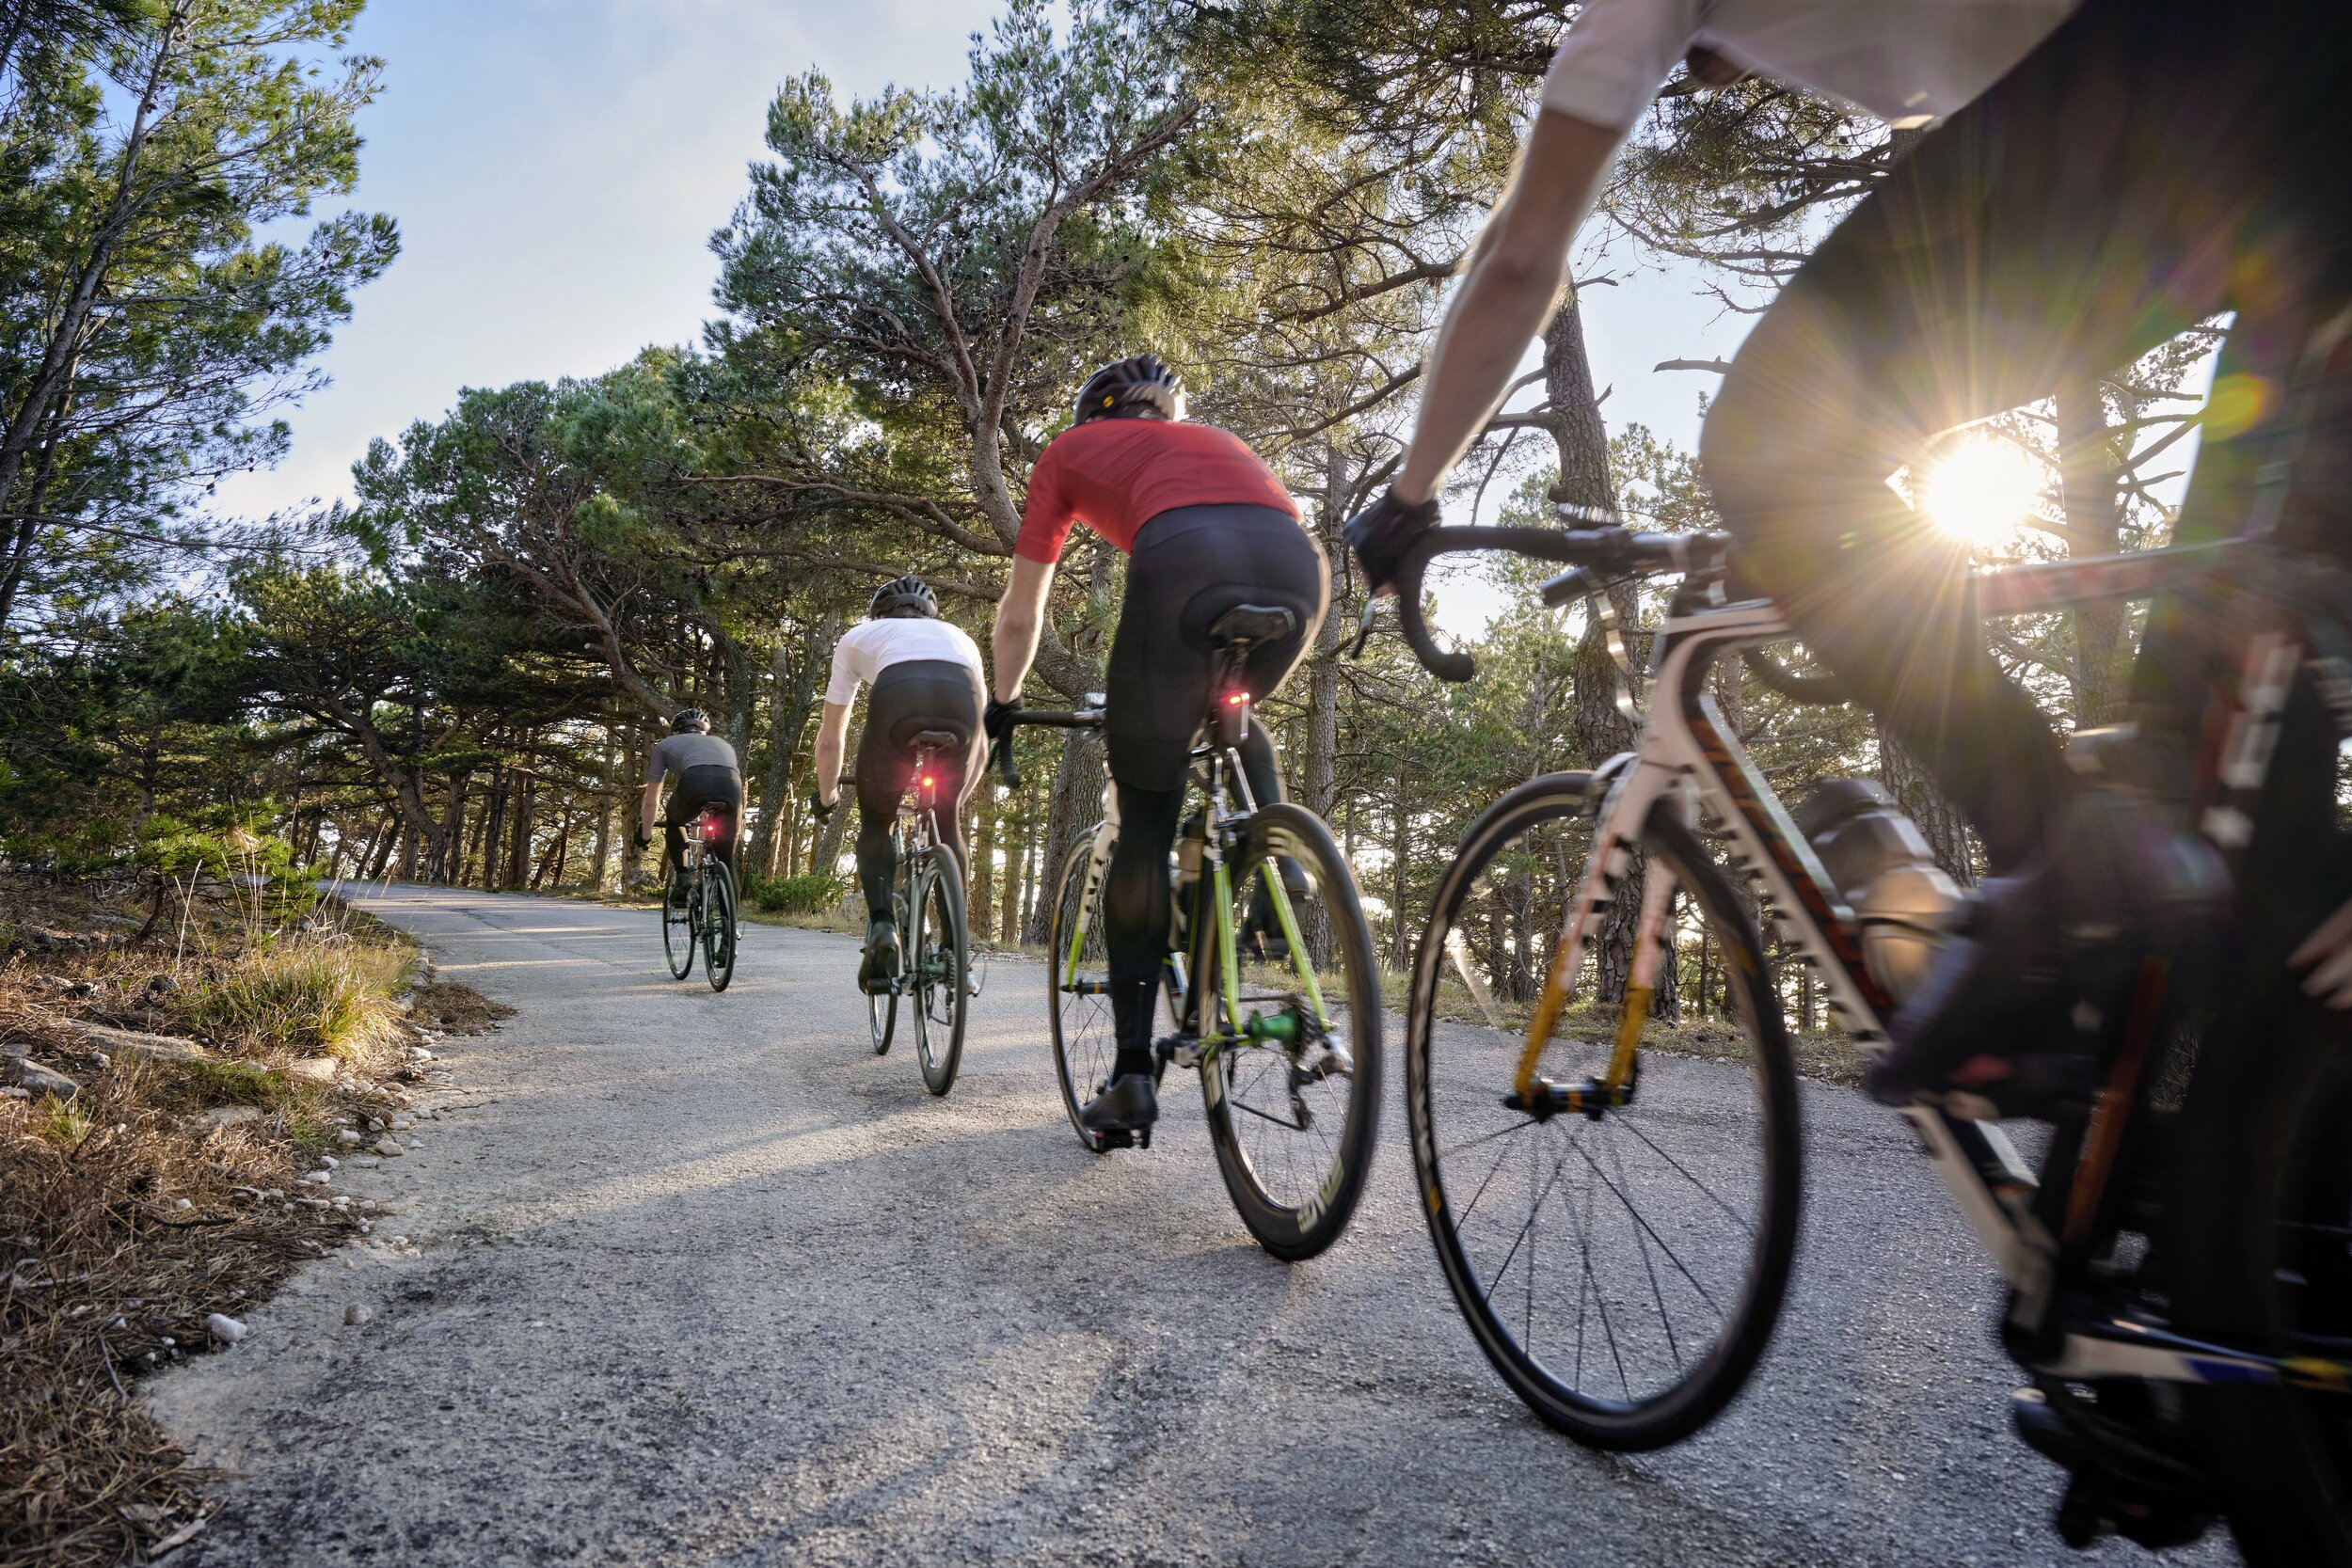 Garmin Release Rearview Radars To Alert Cyclists Of Vehicles Approaching From Behind